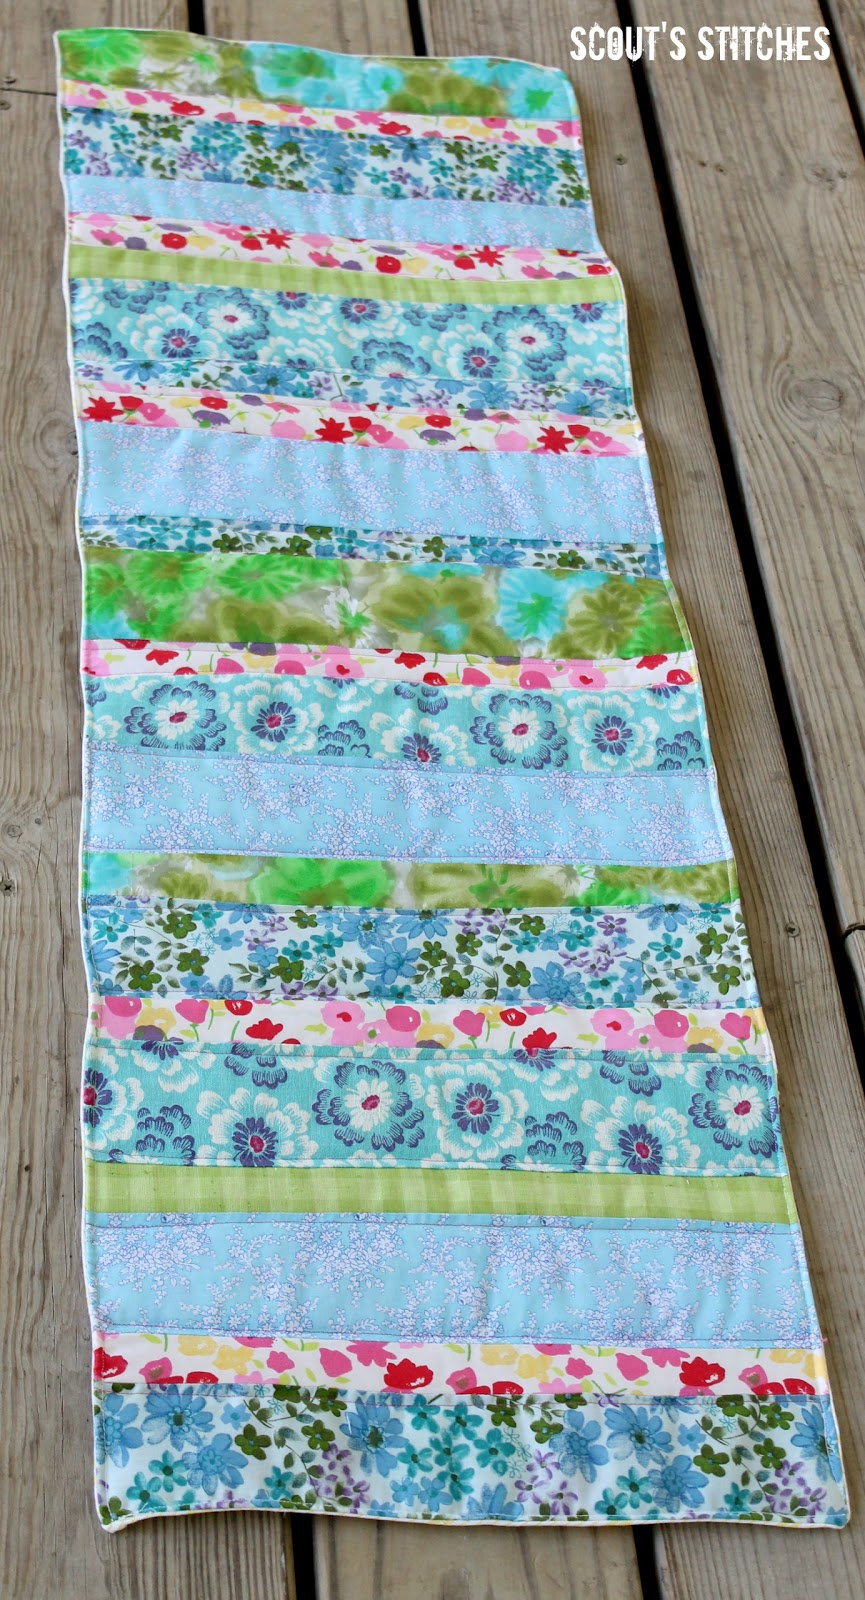 This Spring I Decided To Make A Table Runner. I Wanted It To Be Bright And  Cheery So That It Would Make Me Happy Every Time I Saw It.